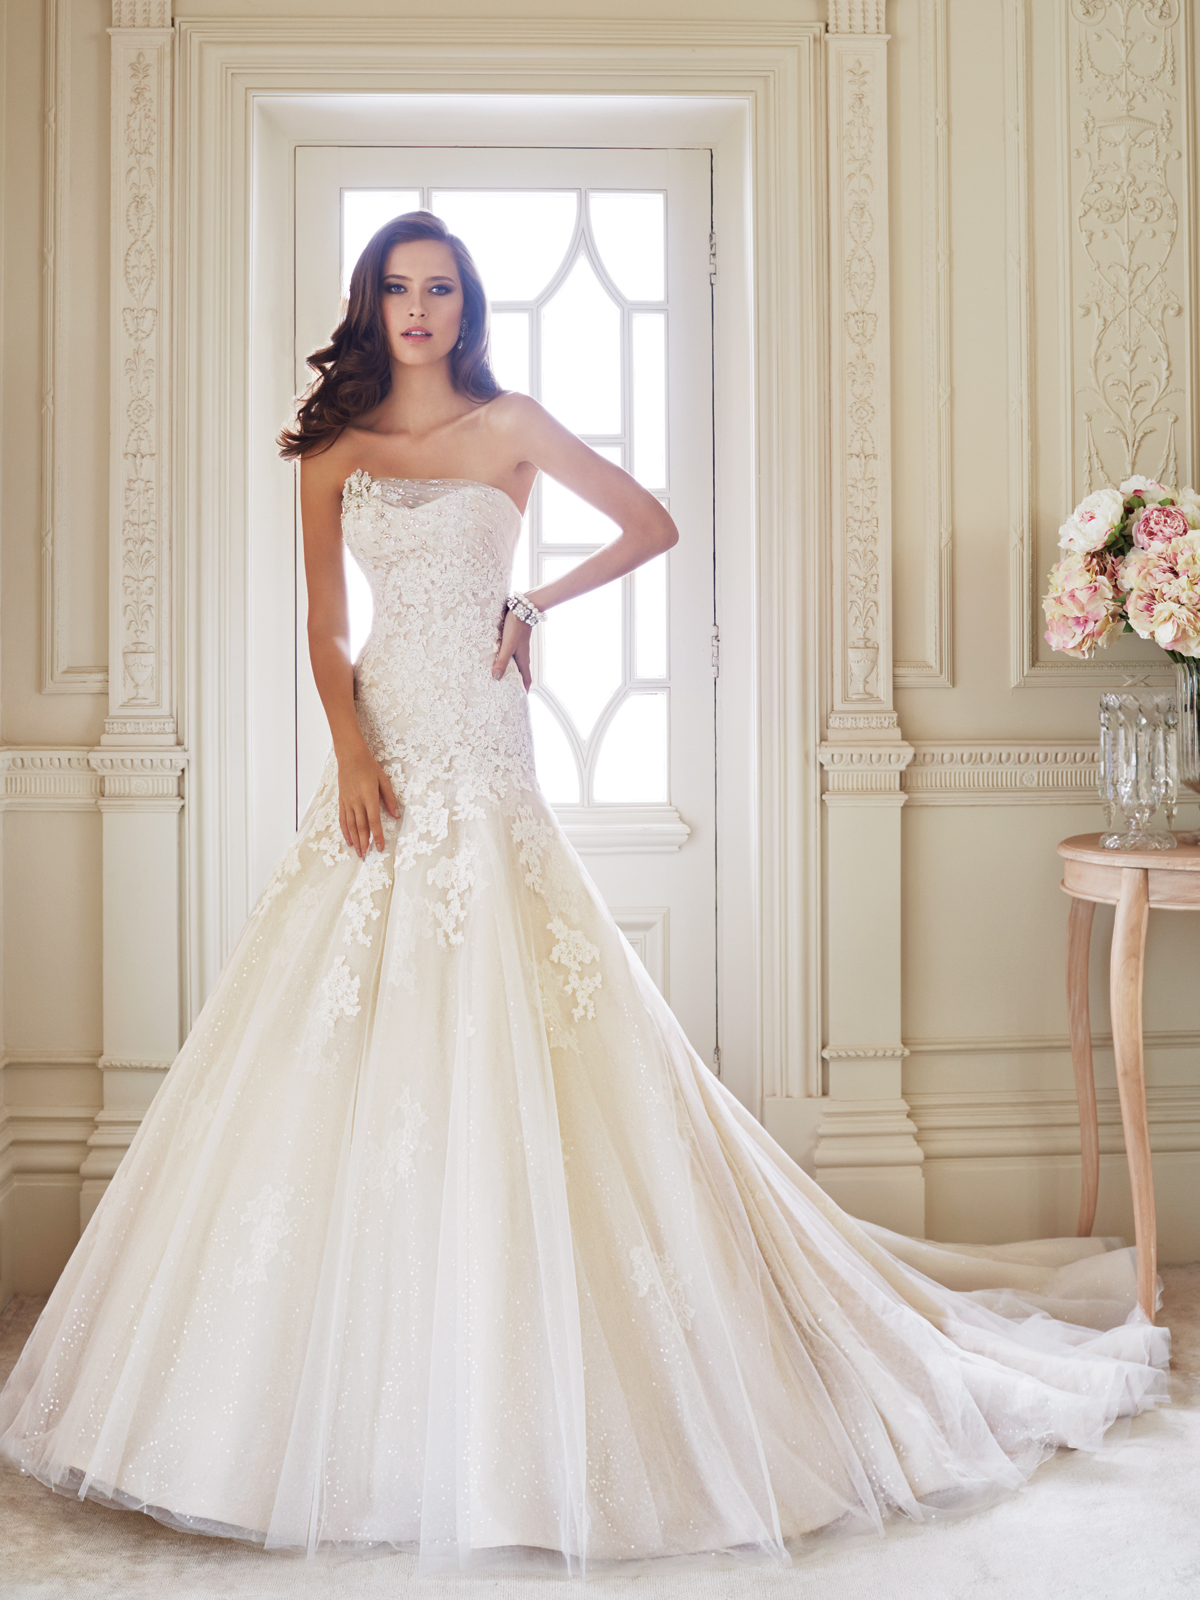 Sophia Tolli Wedding Dresses 2014 Collection - MODwedding